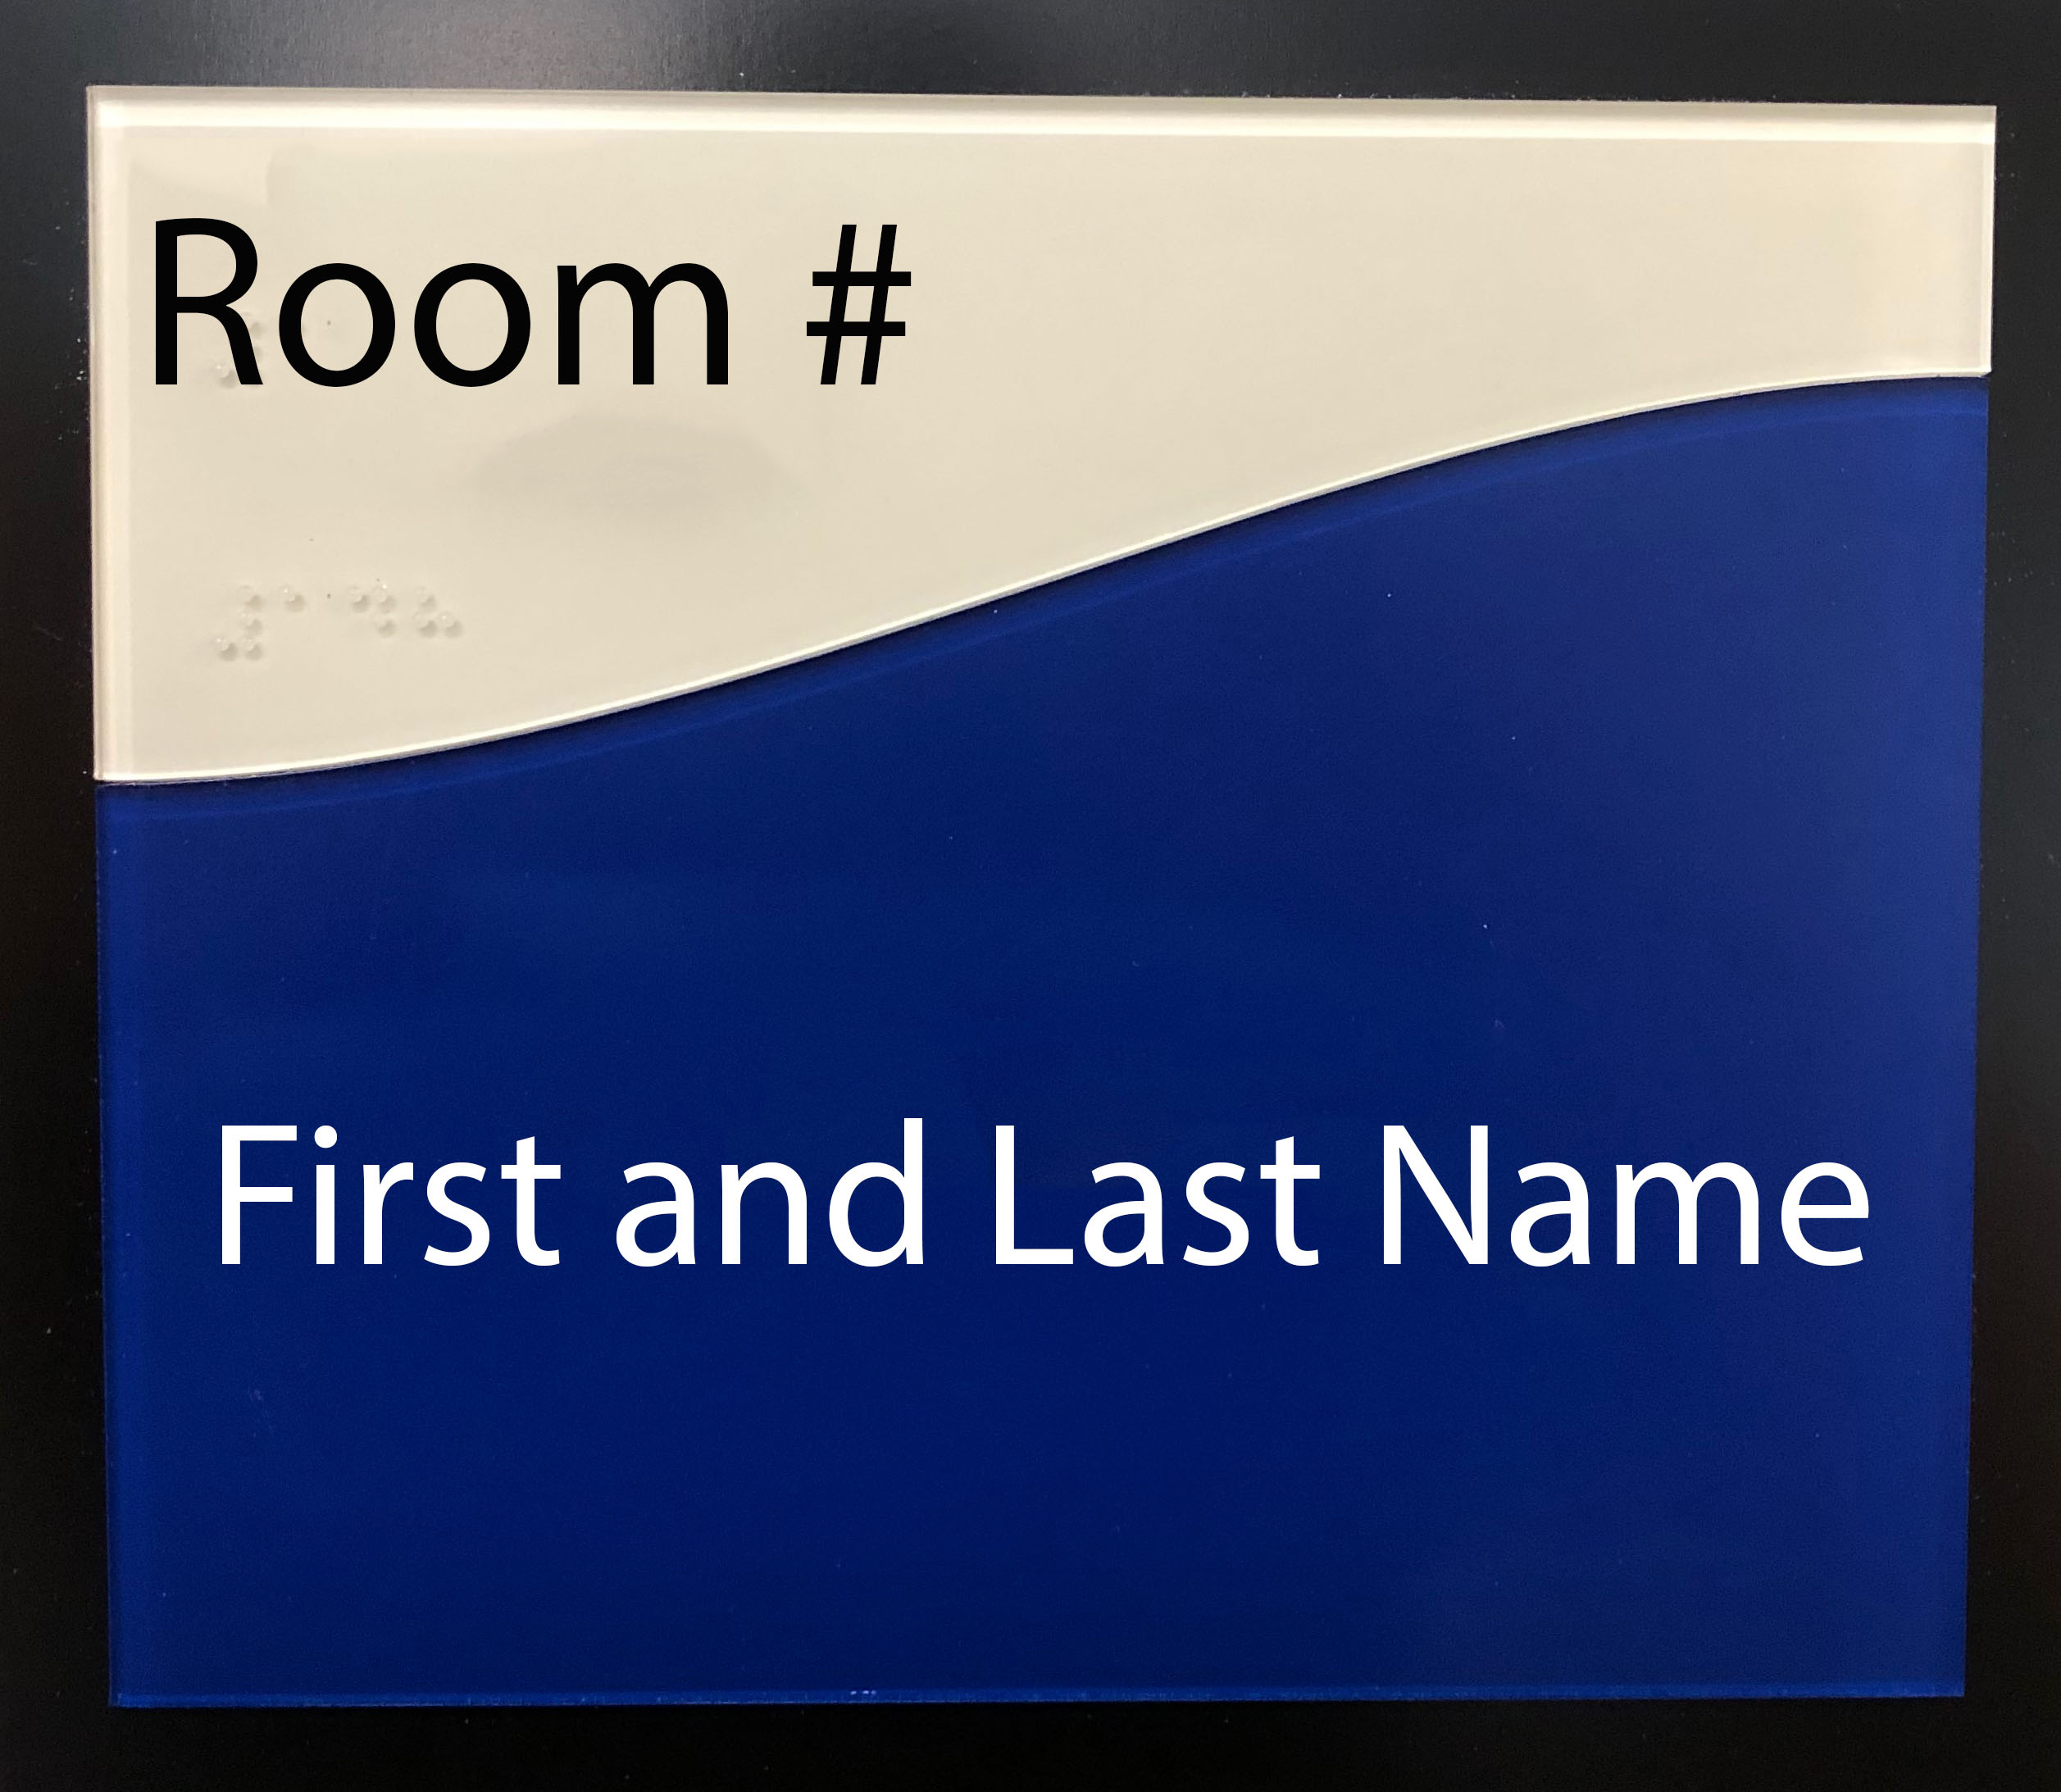 Standard Name and Room #